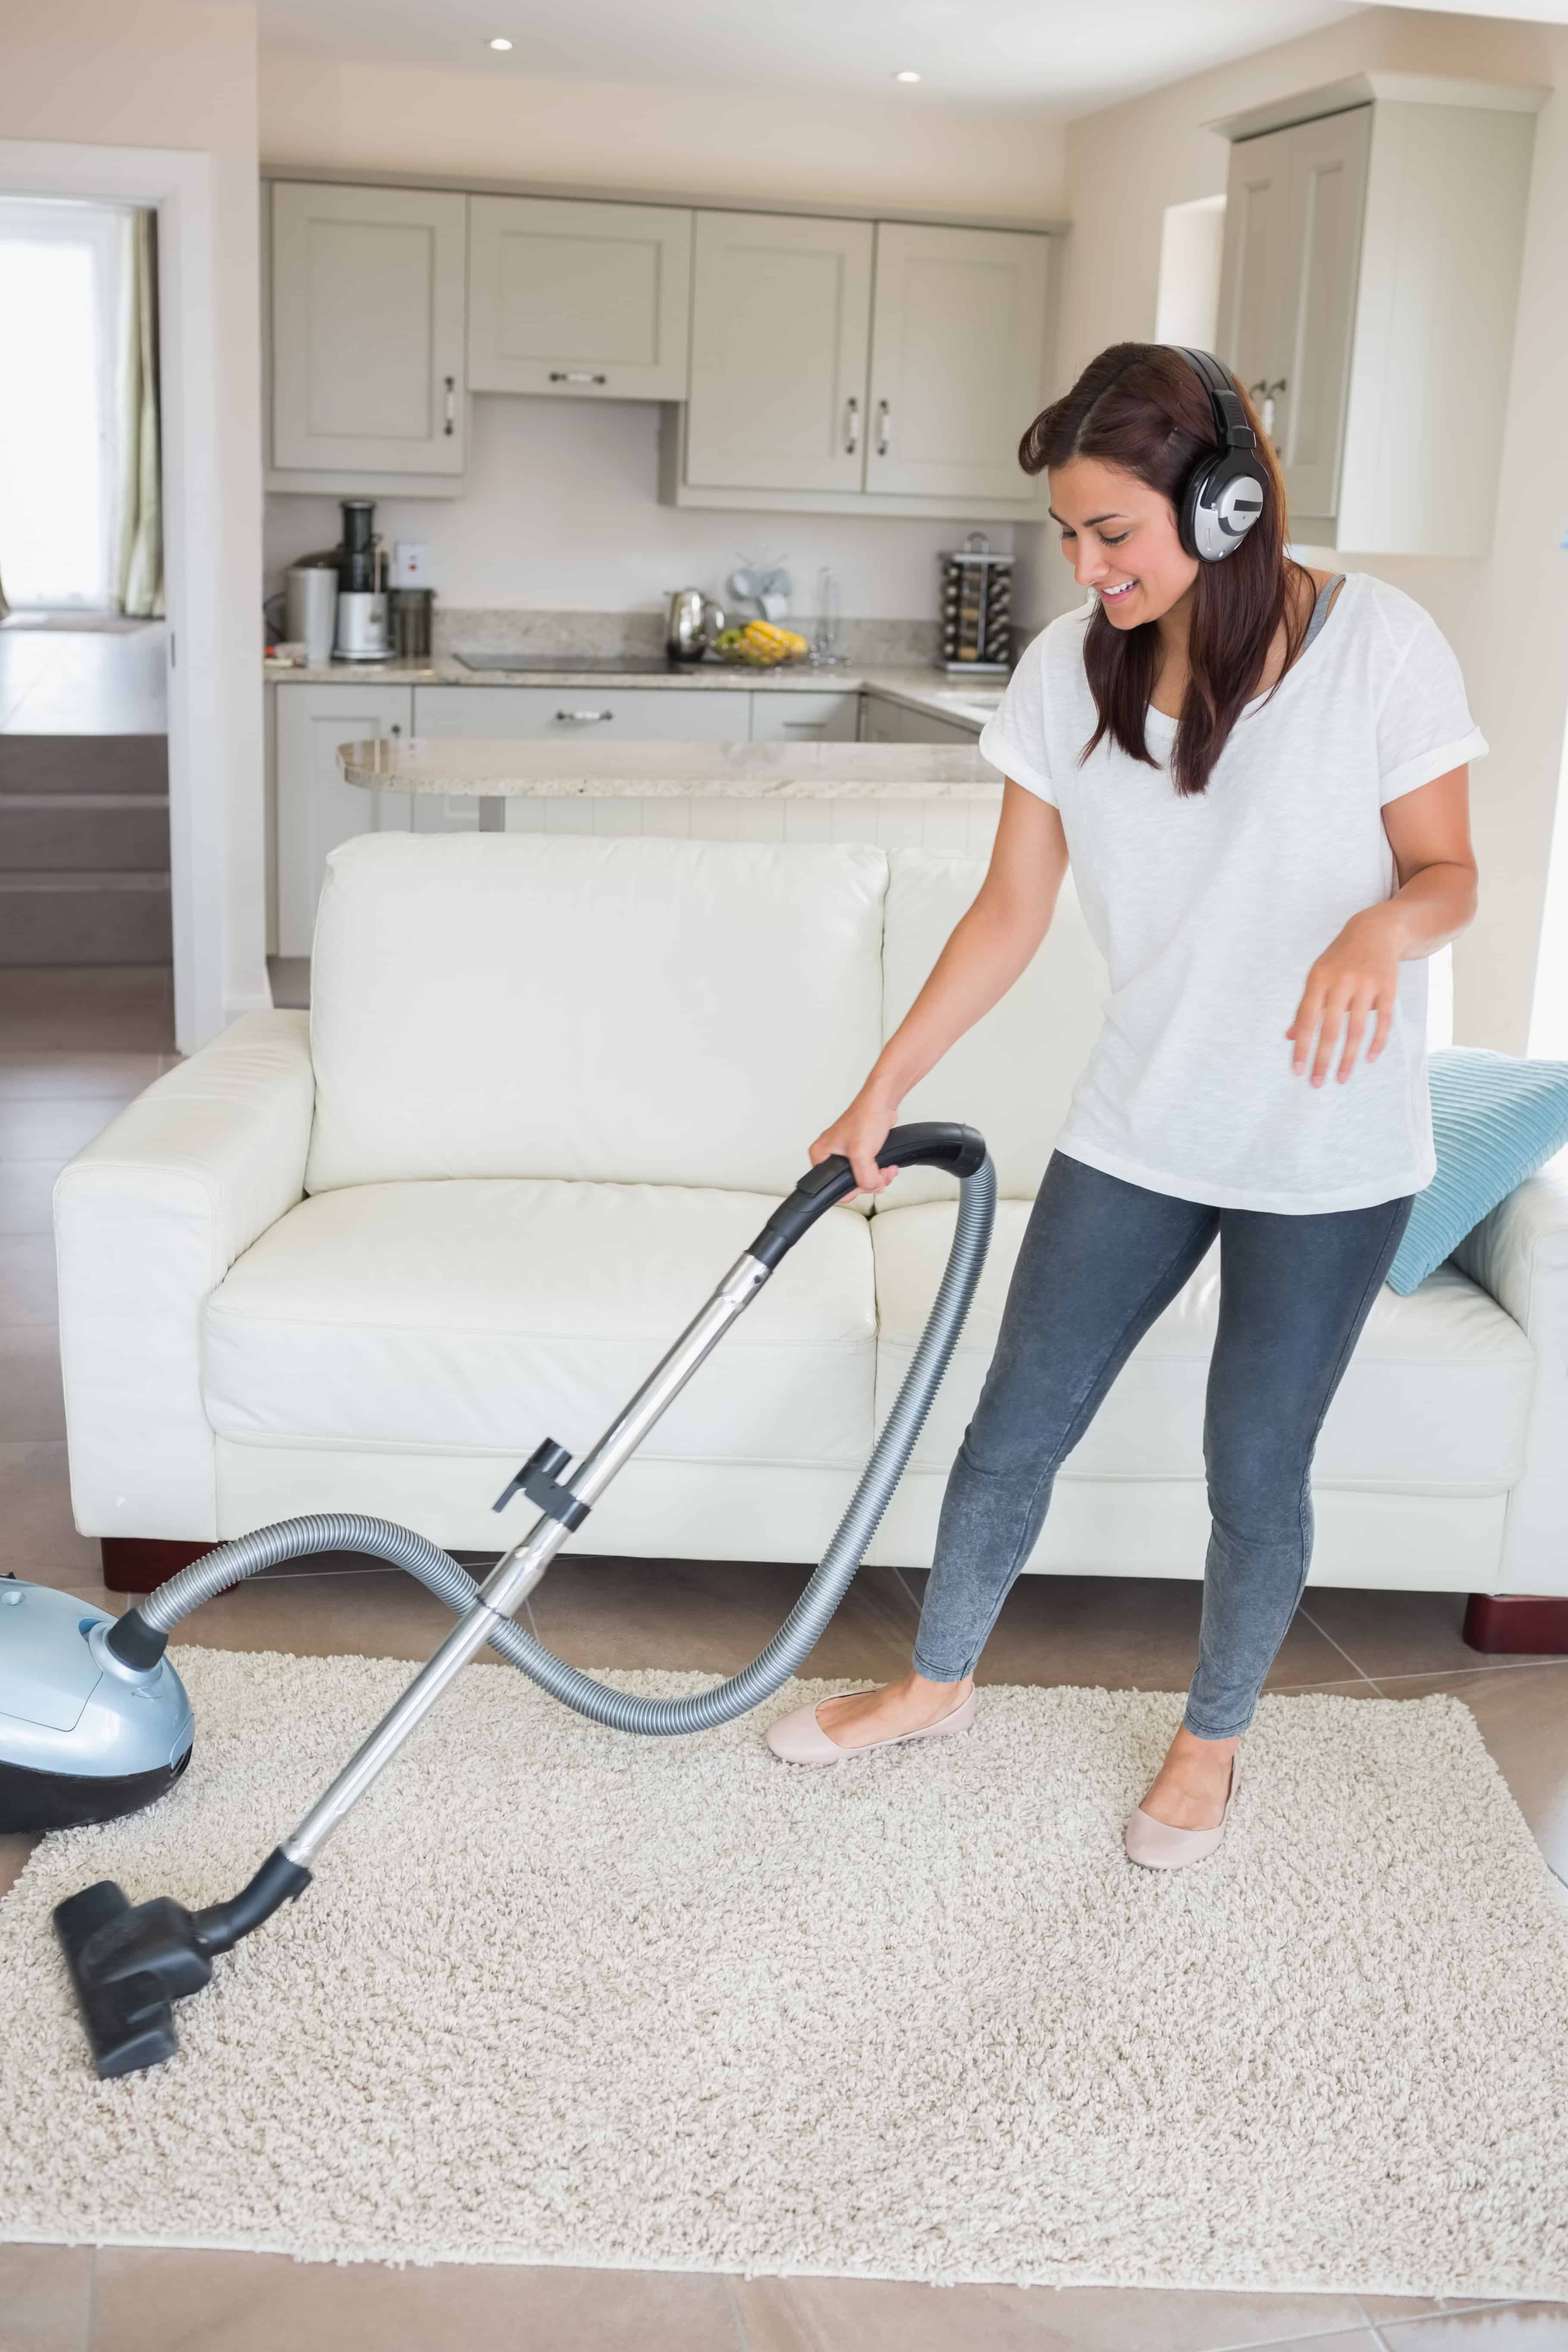 8 House Cleaner Habits You Should Totally Steal The